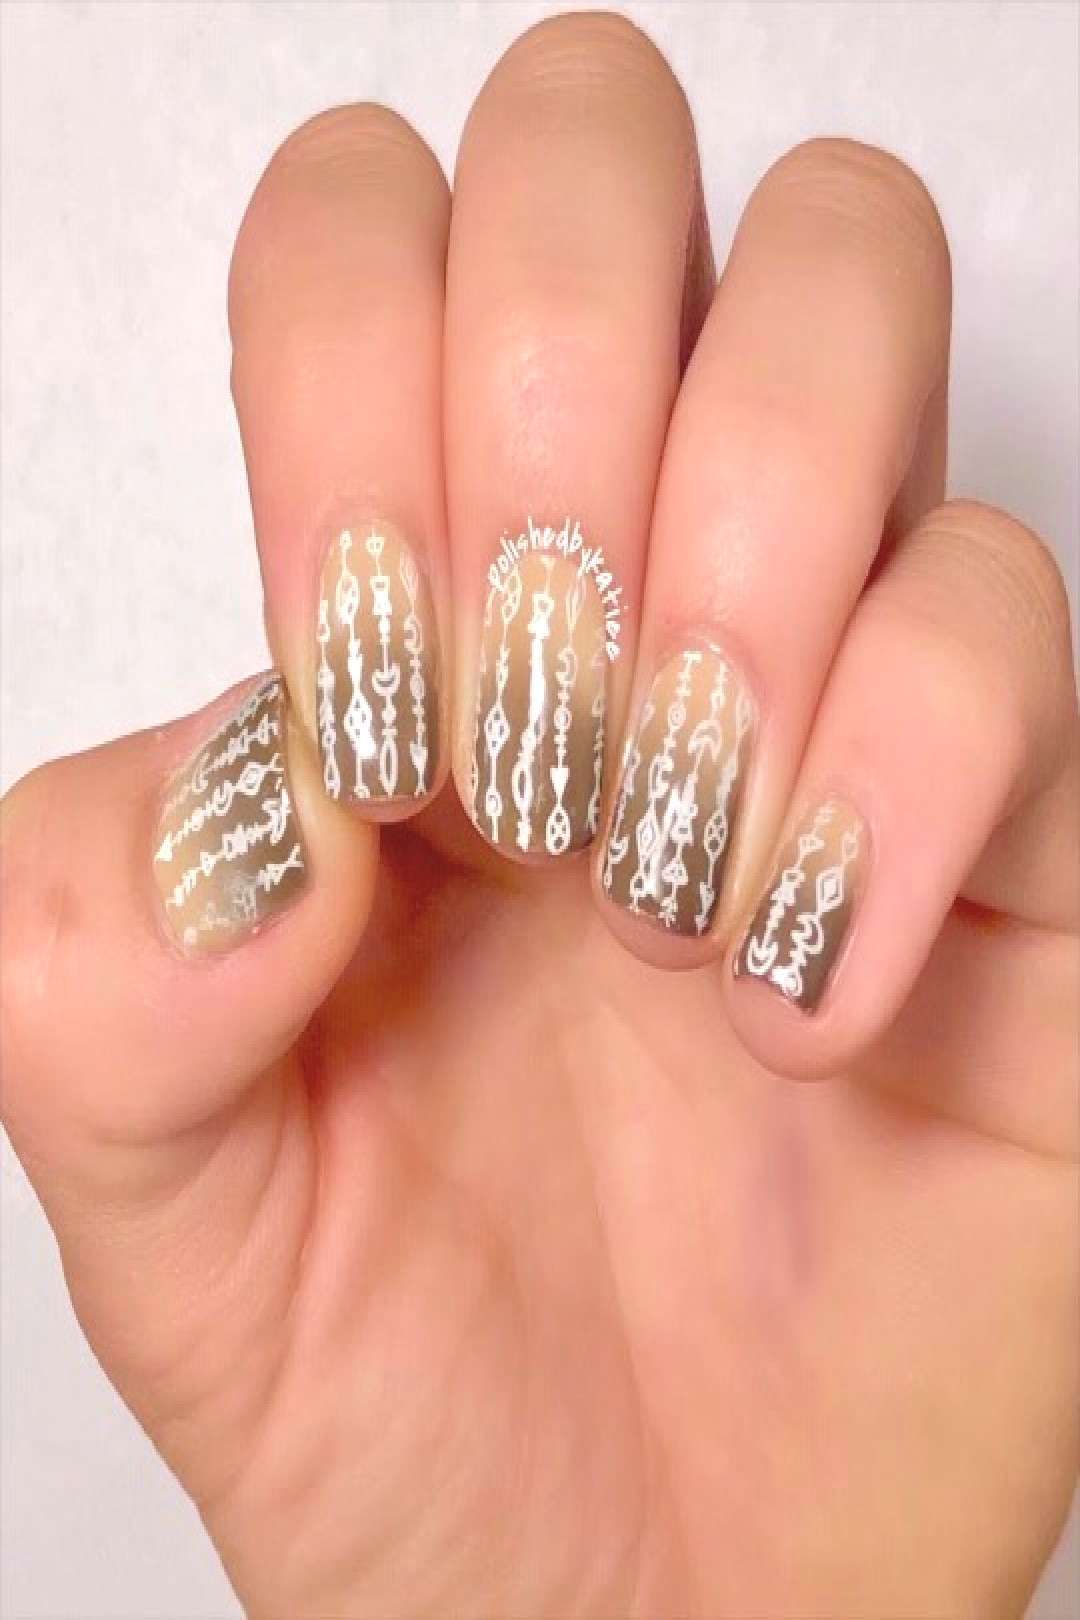 ★ how I did the ombre stamping nails